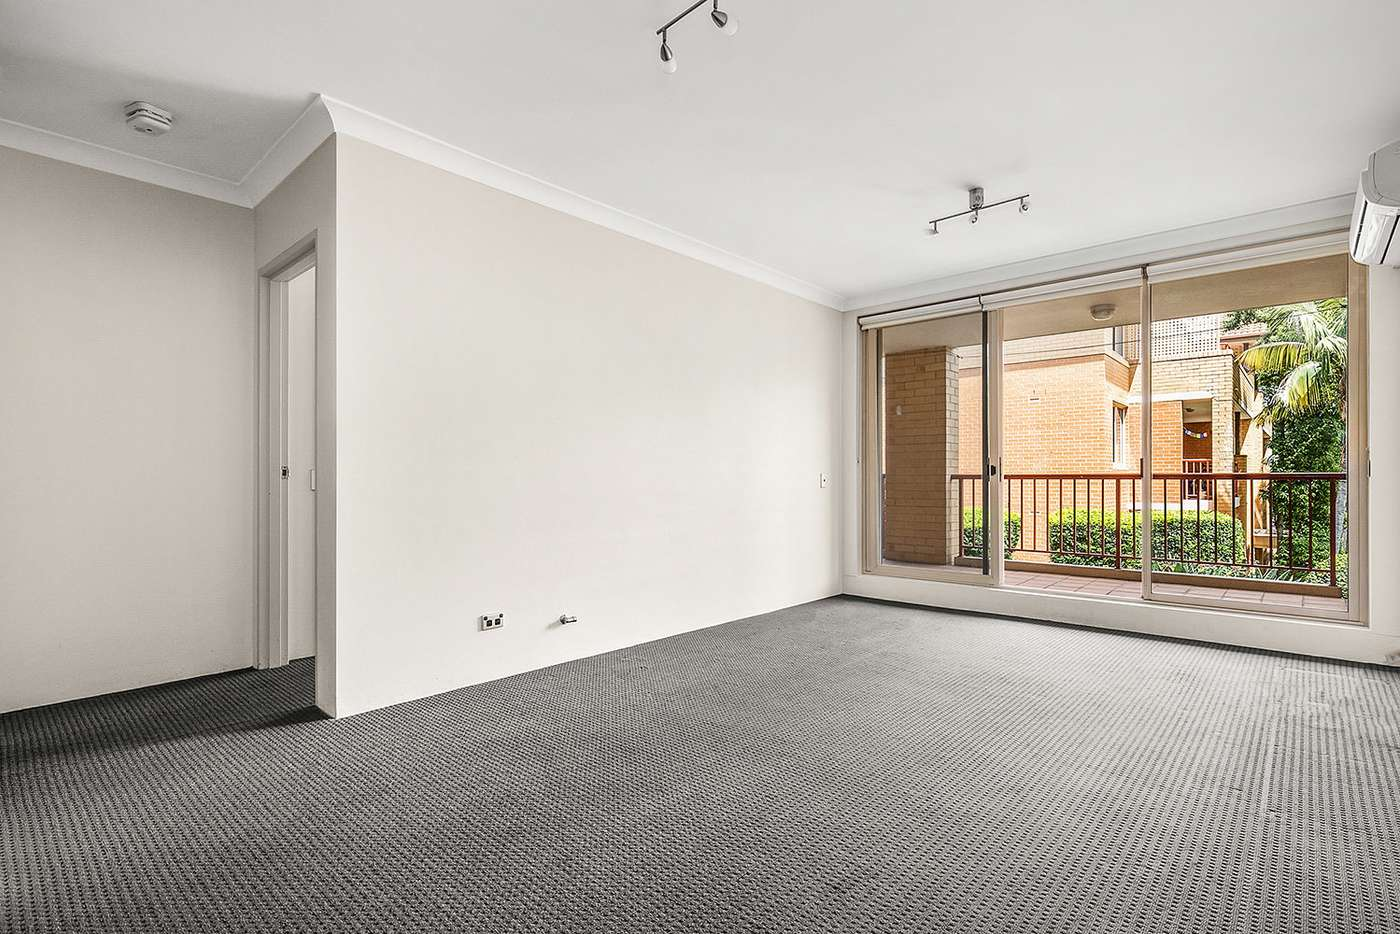 Main view of Homely apartment listing, 28F/19-21 George Street, North Strathfield NSW 2137